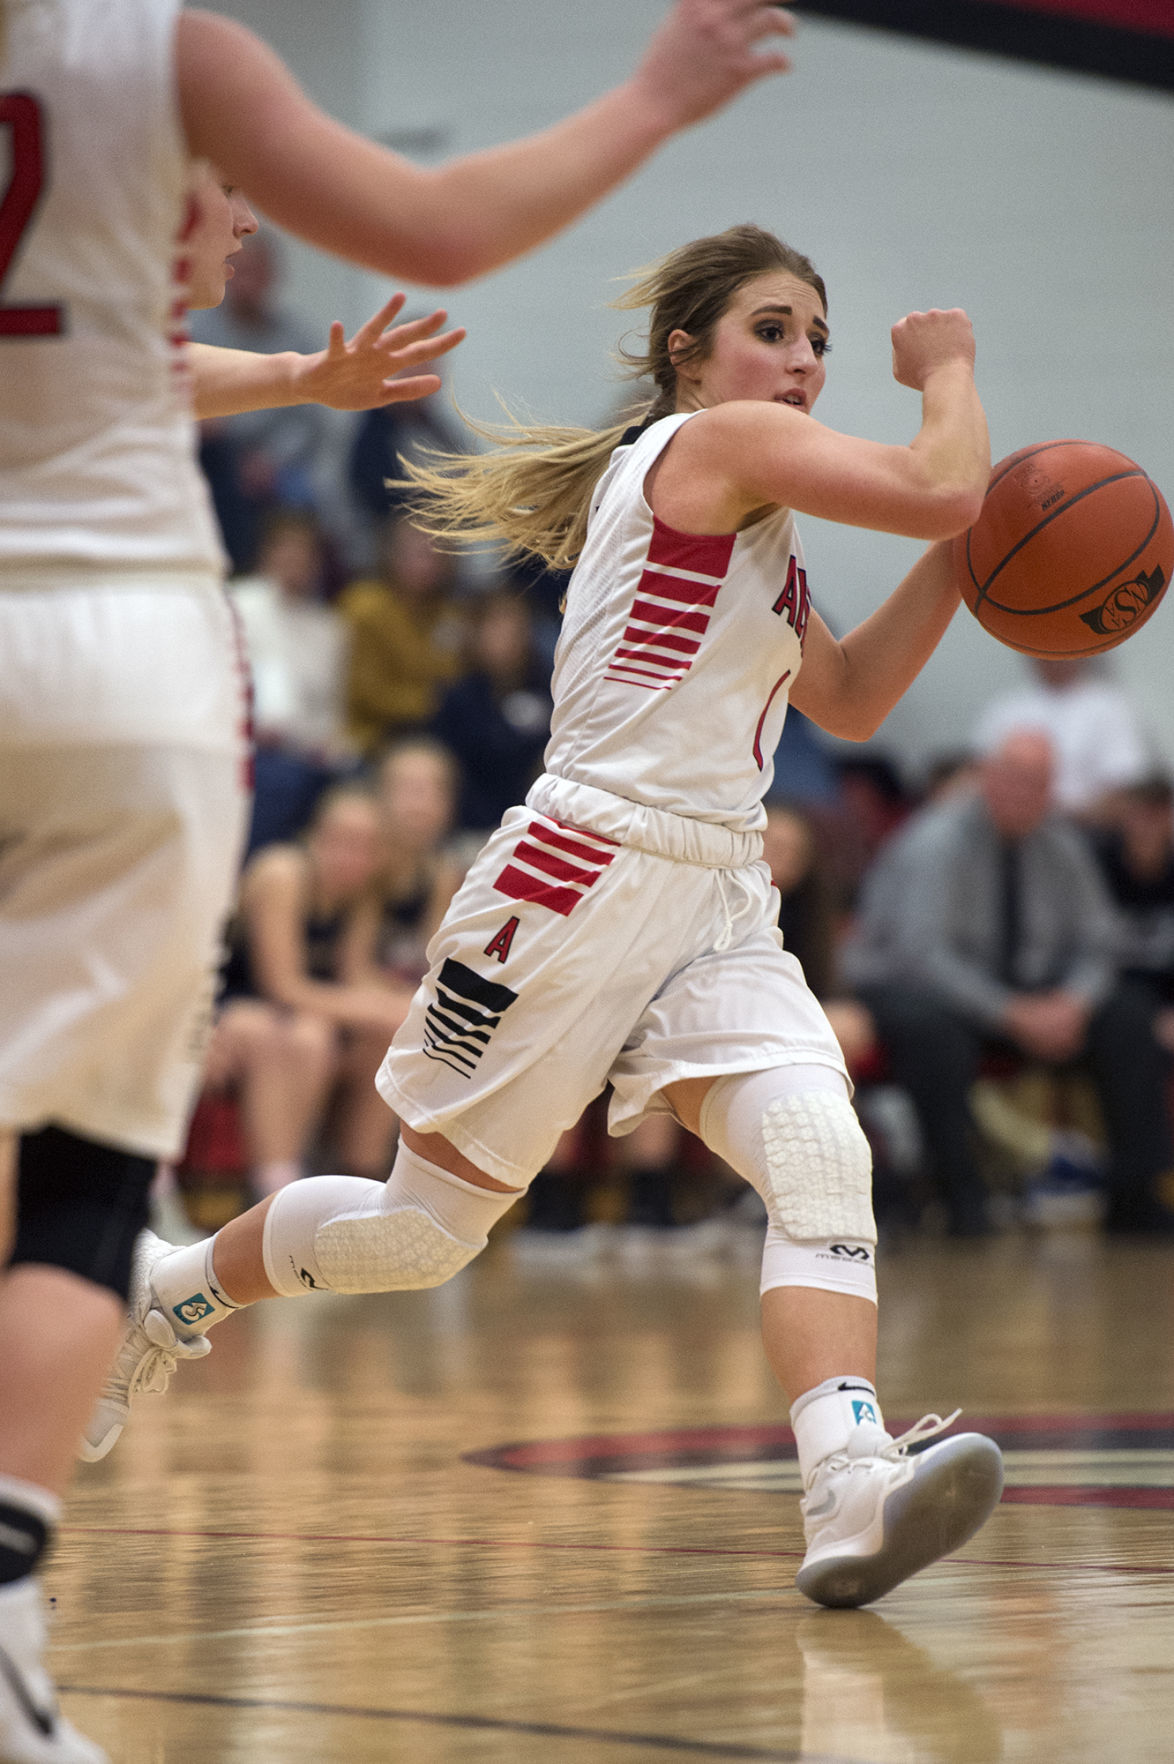 Auburn Girls Set The Tone Defensively To Handcuff Lincoln